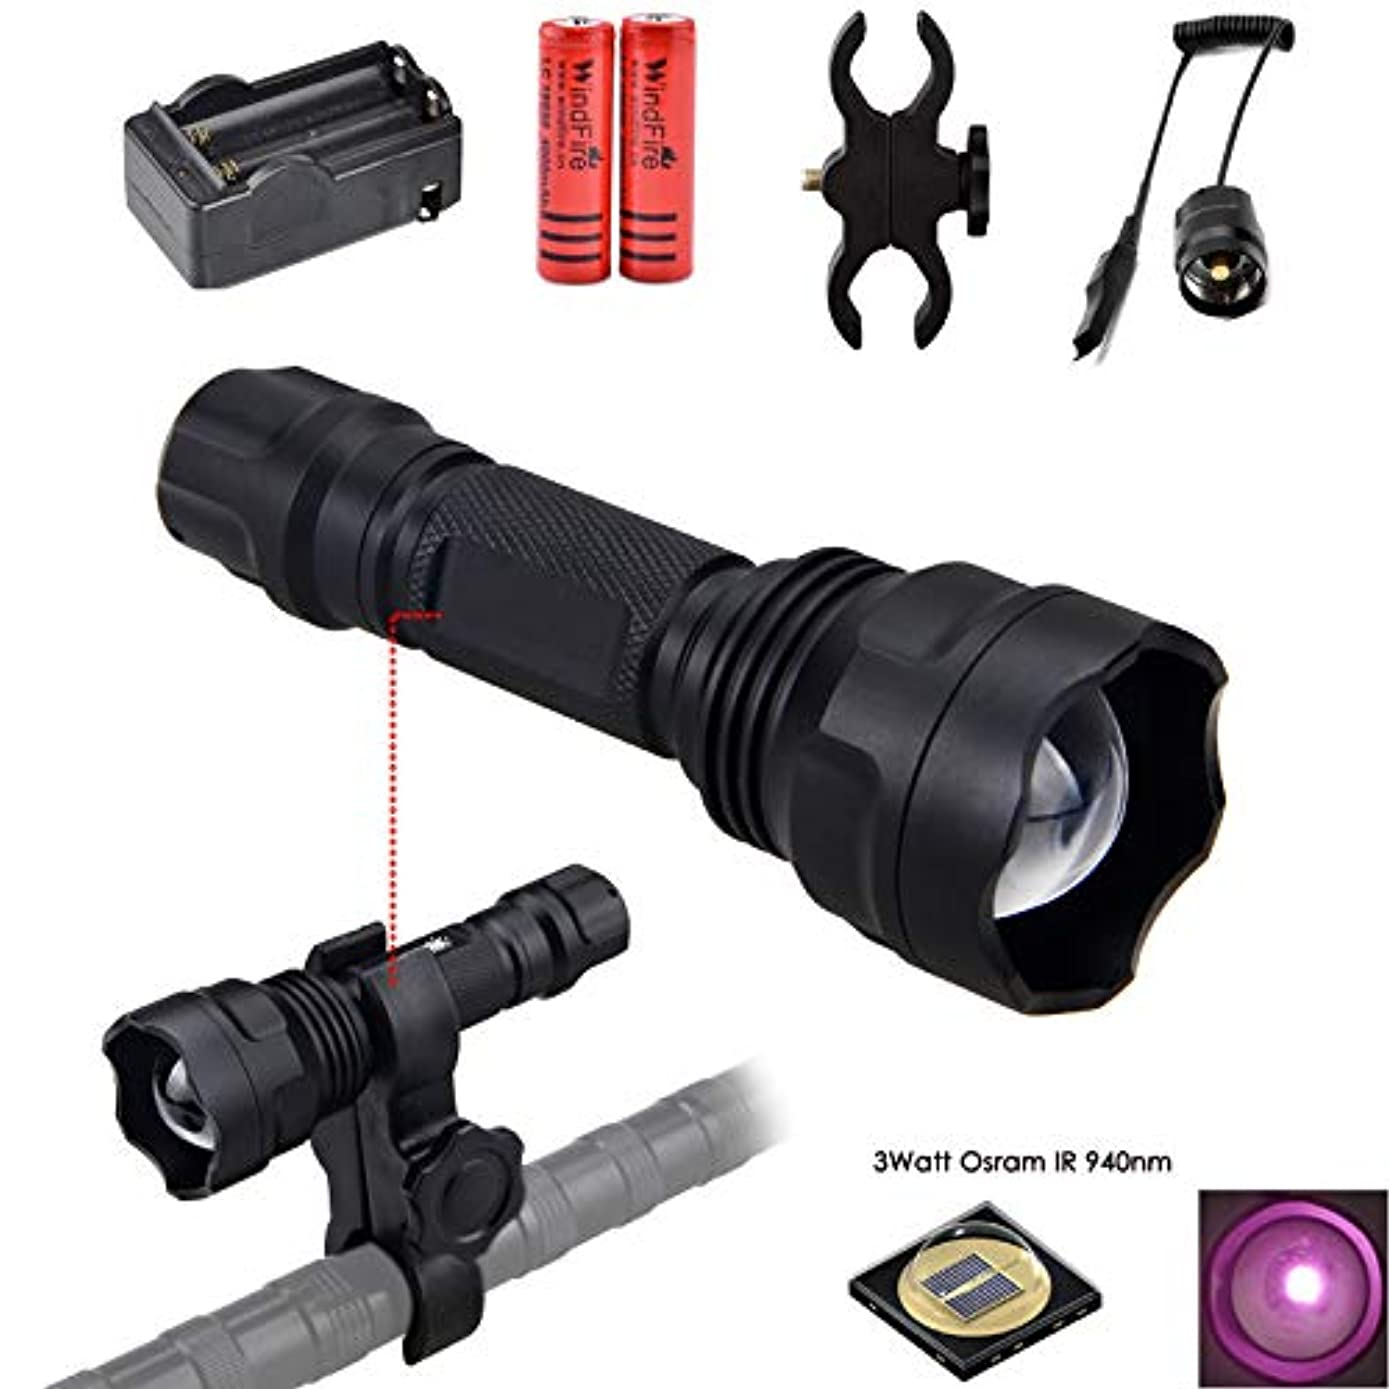 WINDFIRE IR Illuminator Flashlight 940nm Infrared Light Night Vision Flashlight Torch Adjustable Focus LED Flashlight with Batteries, Charger, Scope Mount, Remote Pressure Switch for Night Hunting